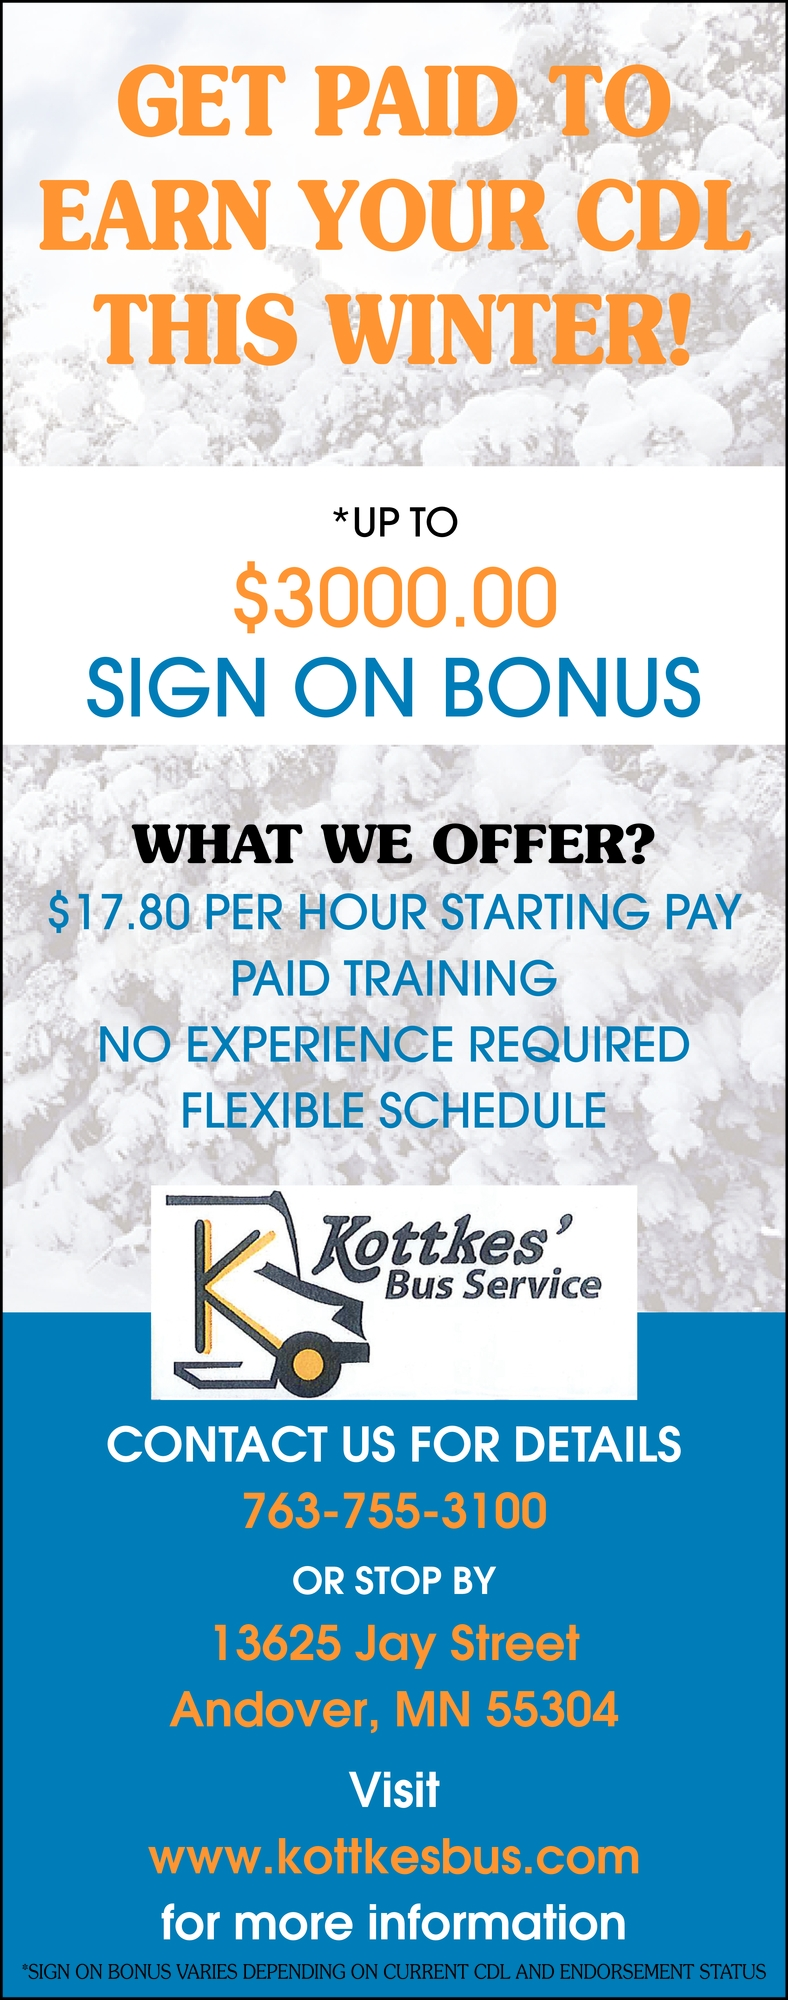 Get Paid To Earn Your CDL This Winter